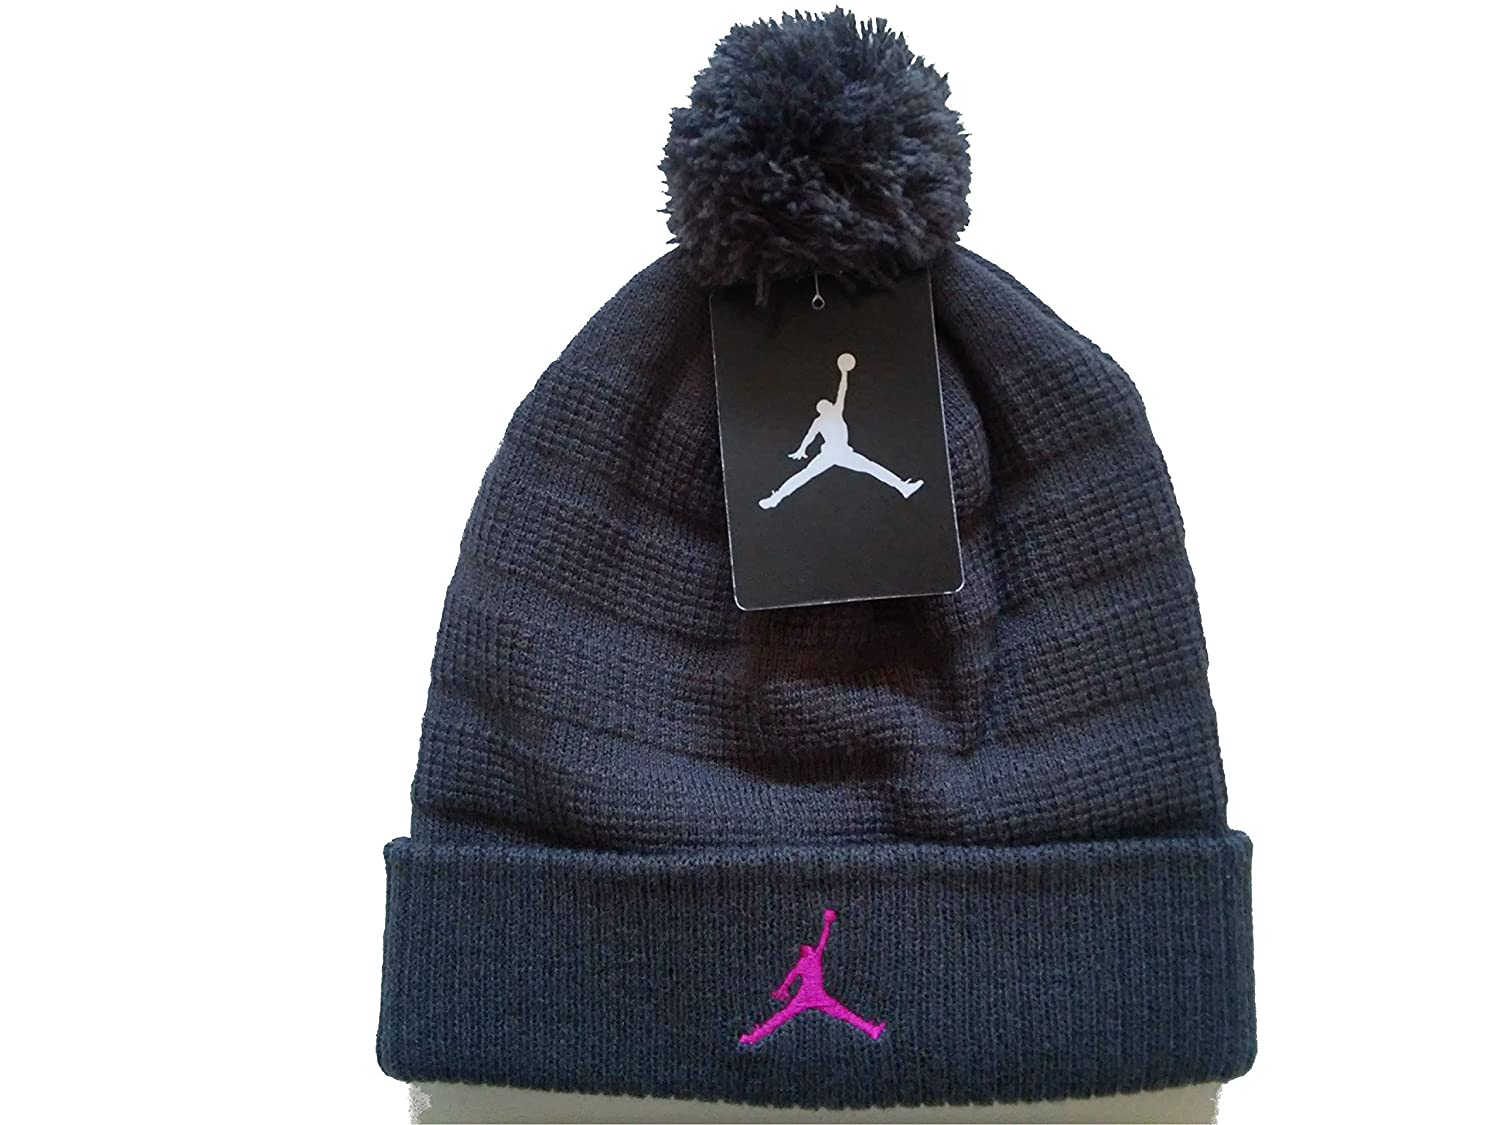 85585f1bb72 NIKE Air Jordan Unisex Jumpman Knit Winter Cuffed Pom Beanie Ski Cap ...